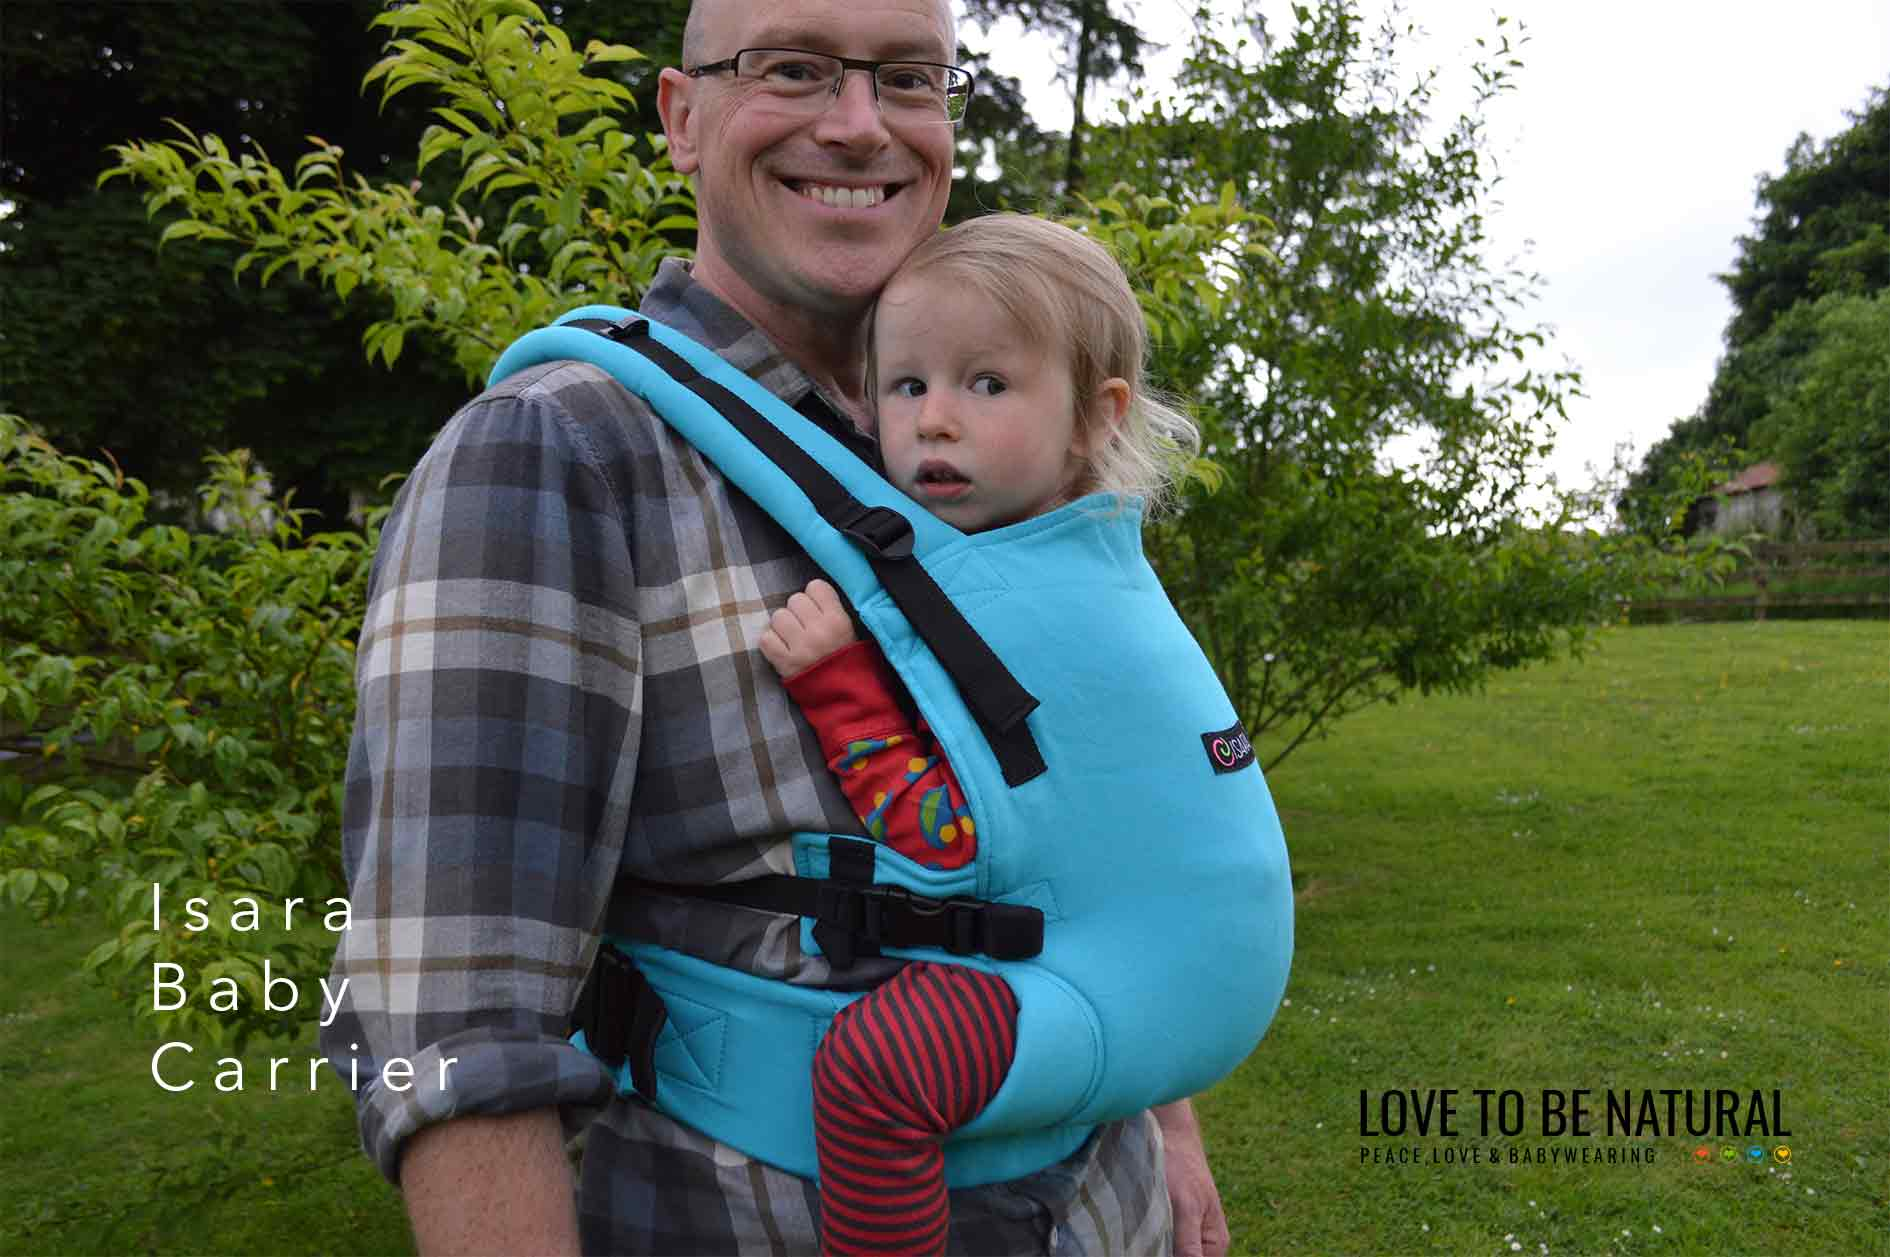 Isara Baby Carrier